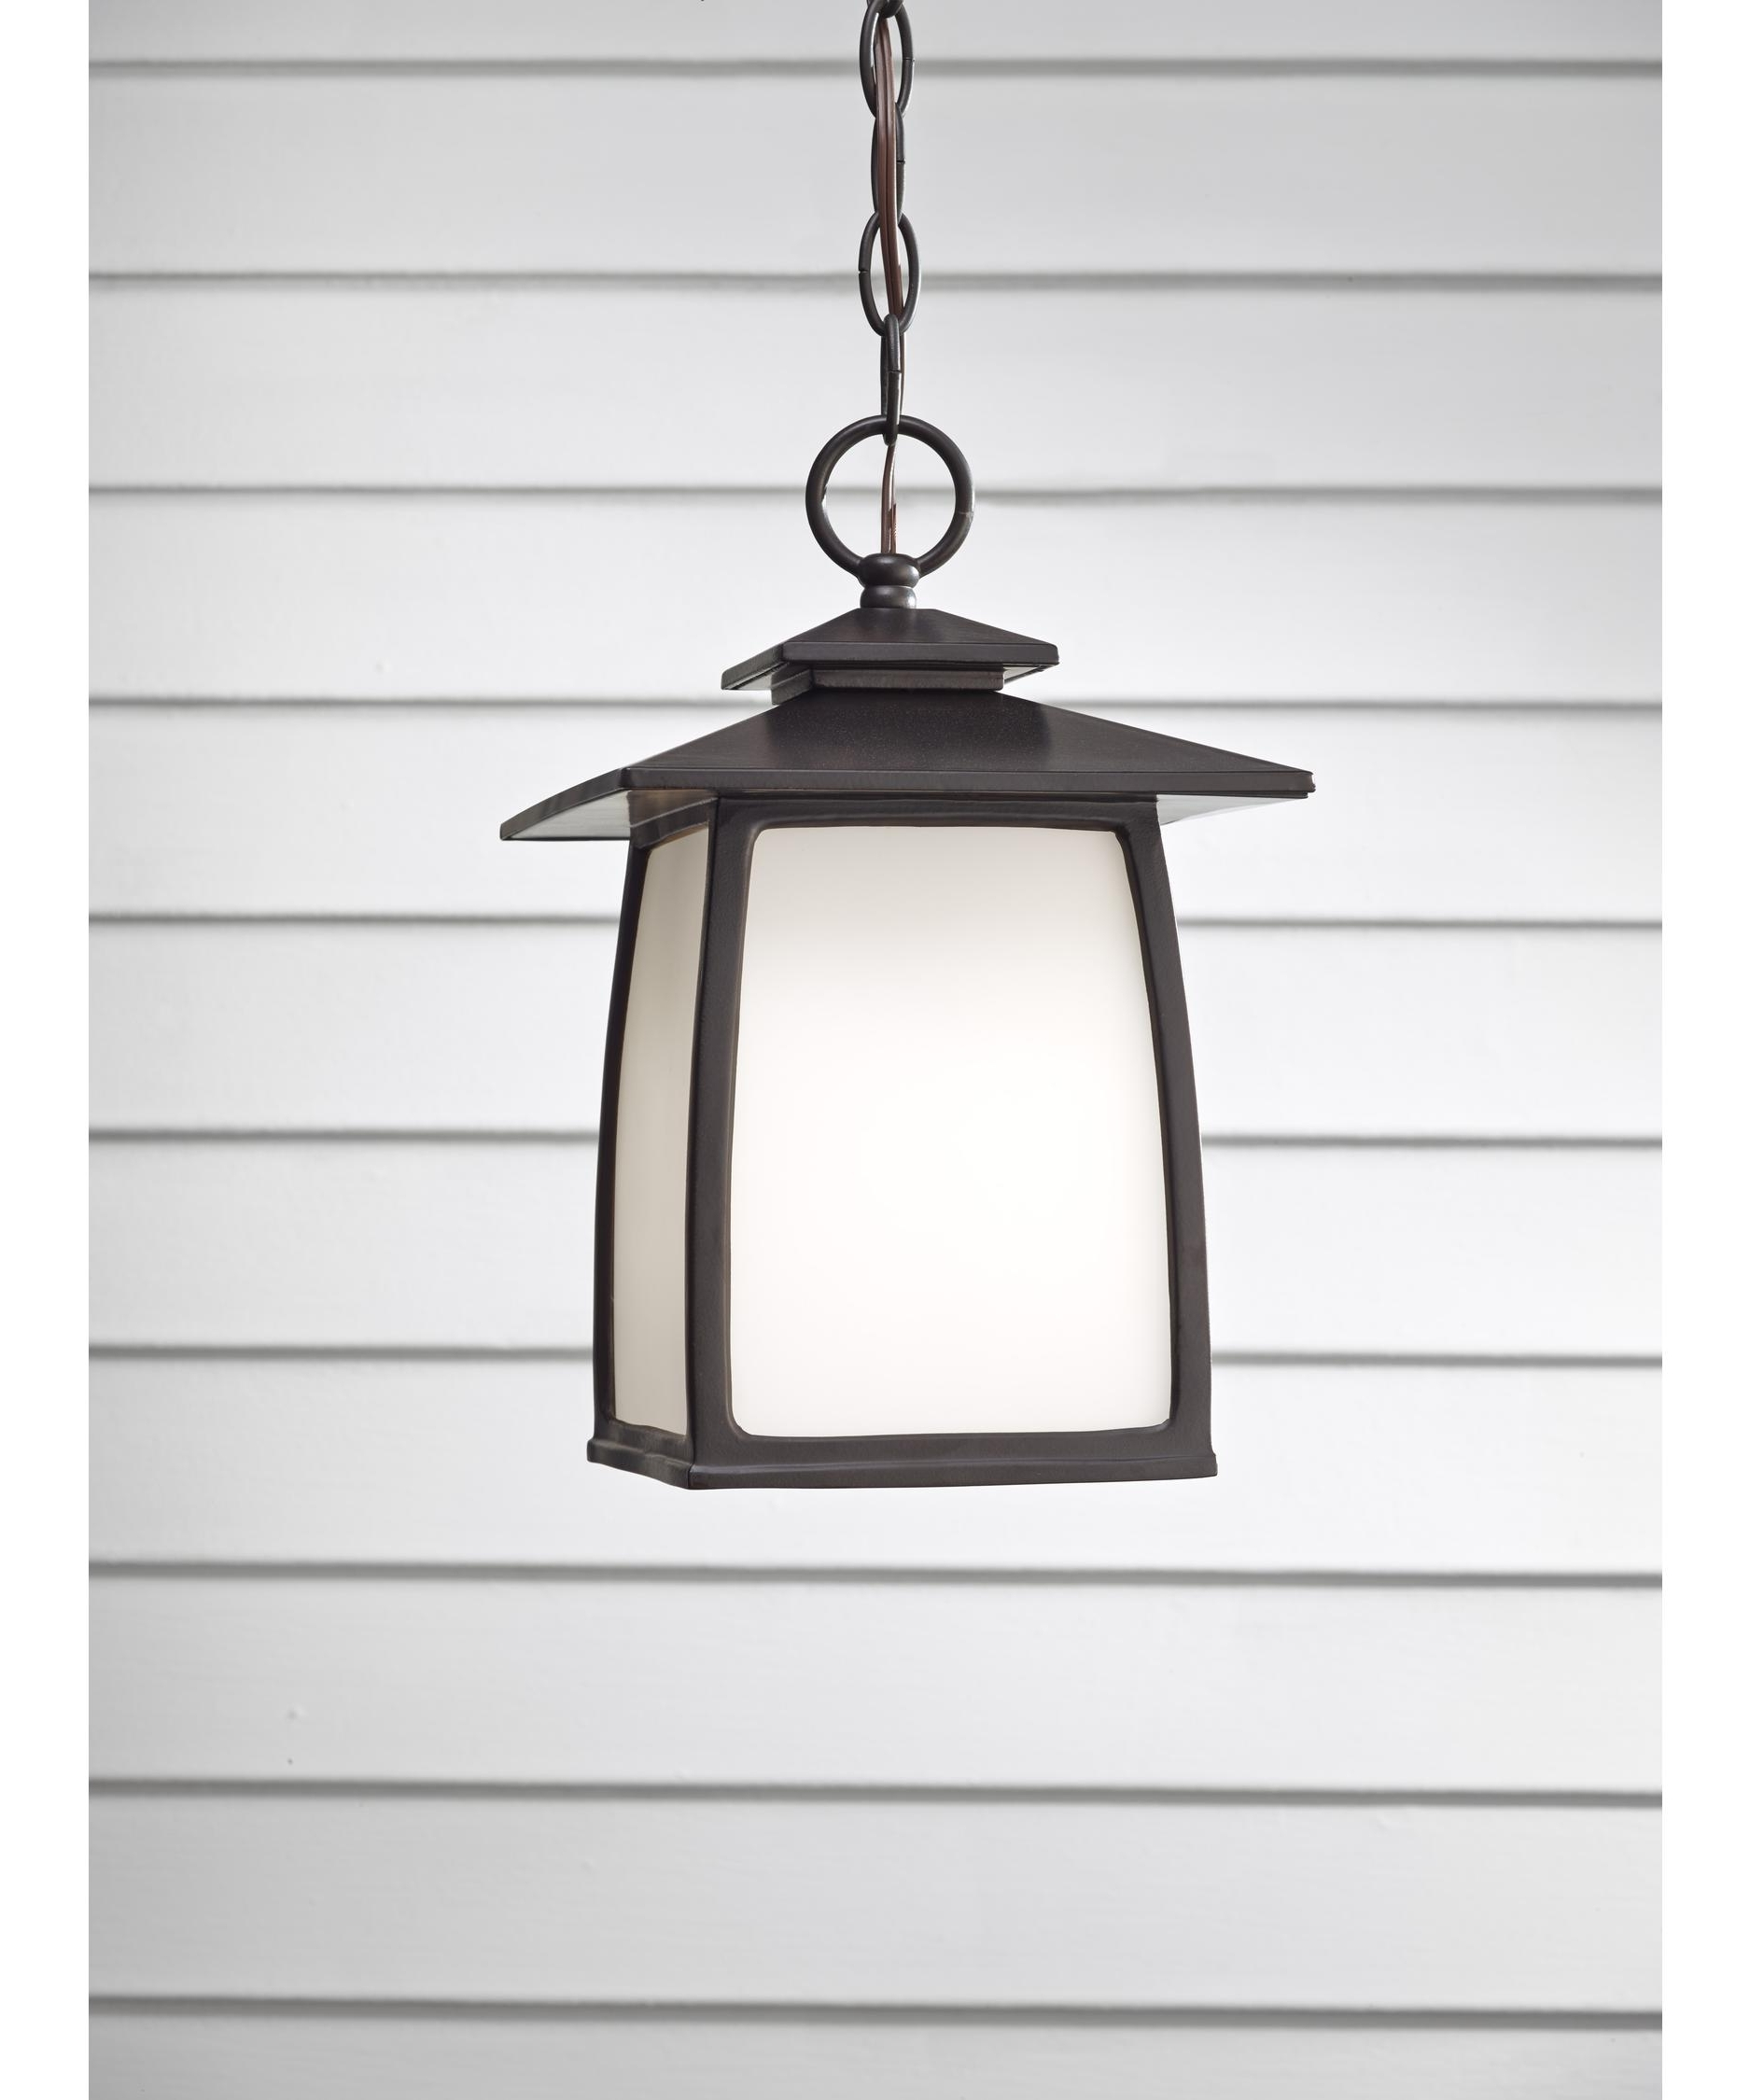 2019 Murray Feiss Ol8511 Wright House 8 Inch Wide 1 Light Outdoor Hanging In Outdoor Hanging Orb Lights (View 1 of 20)